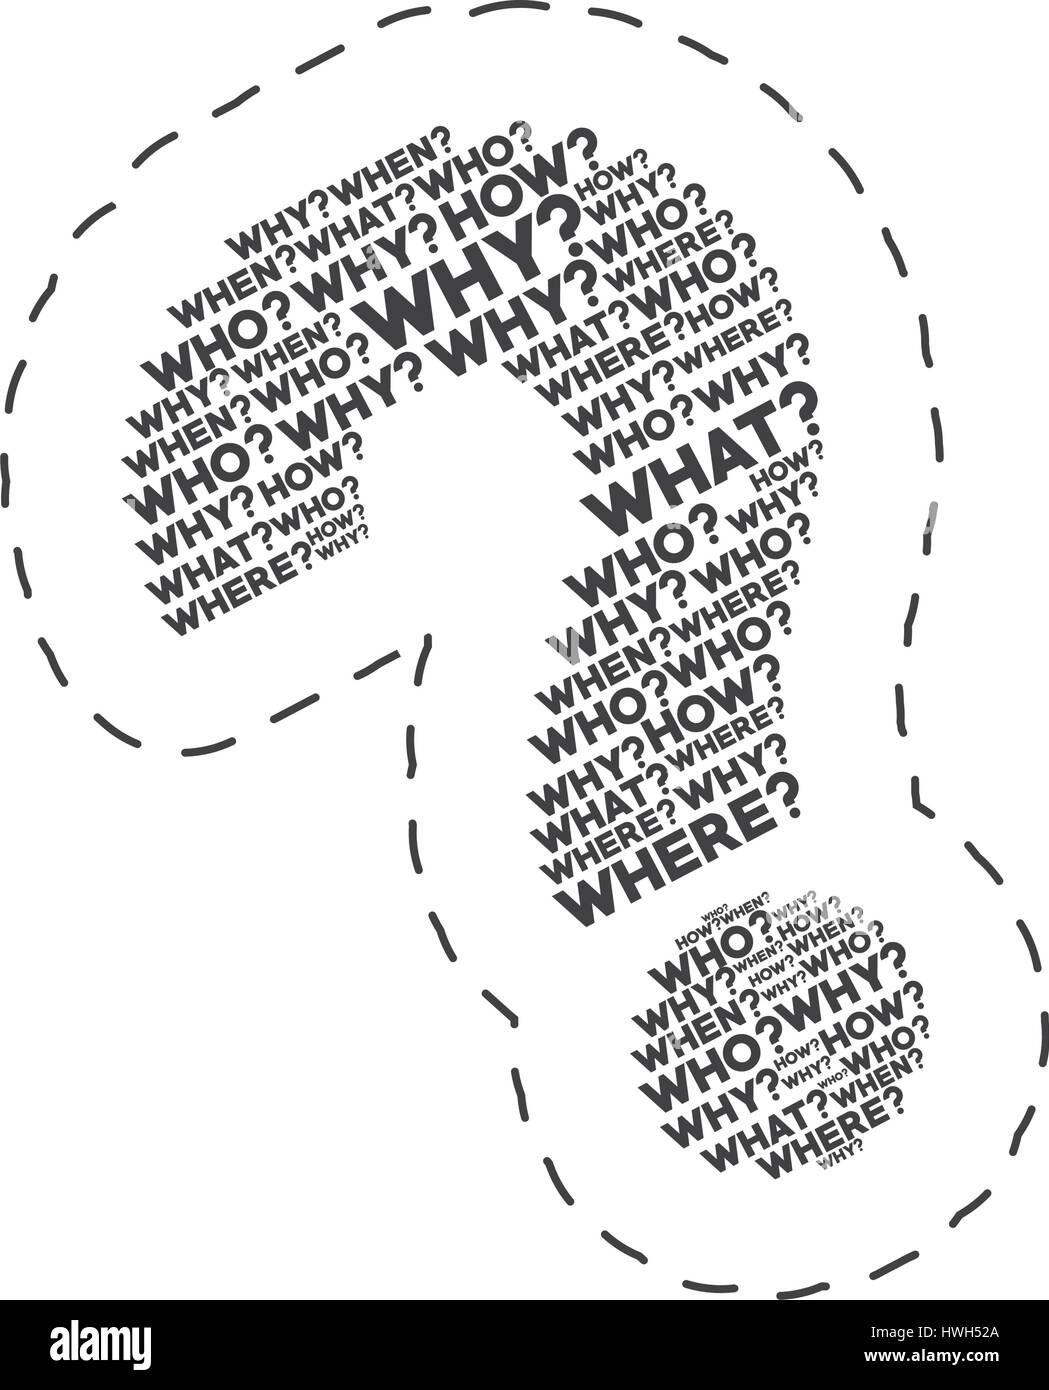 question mark words image - Stock Image